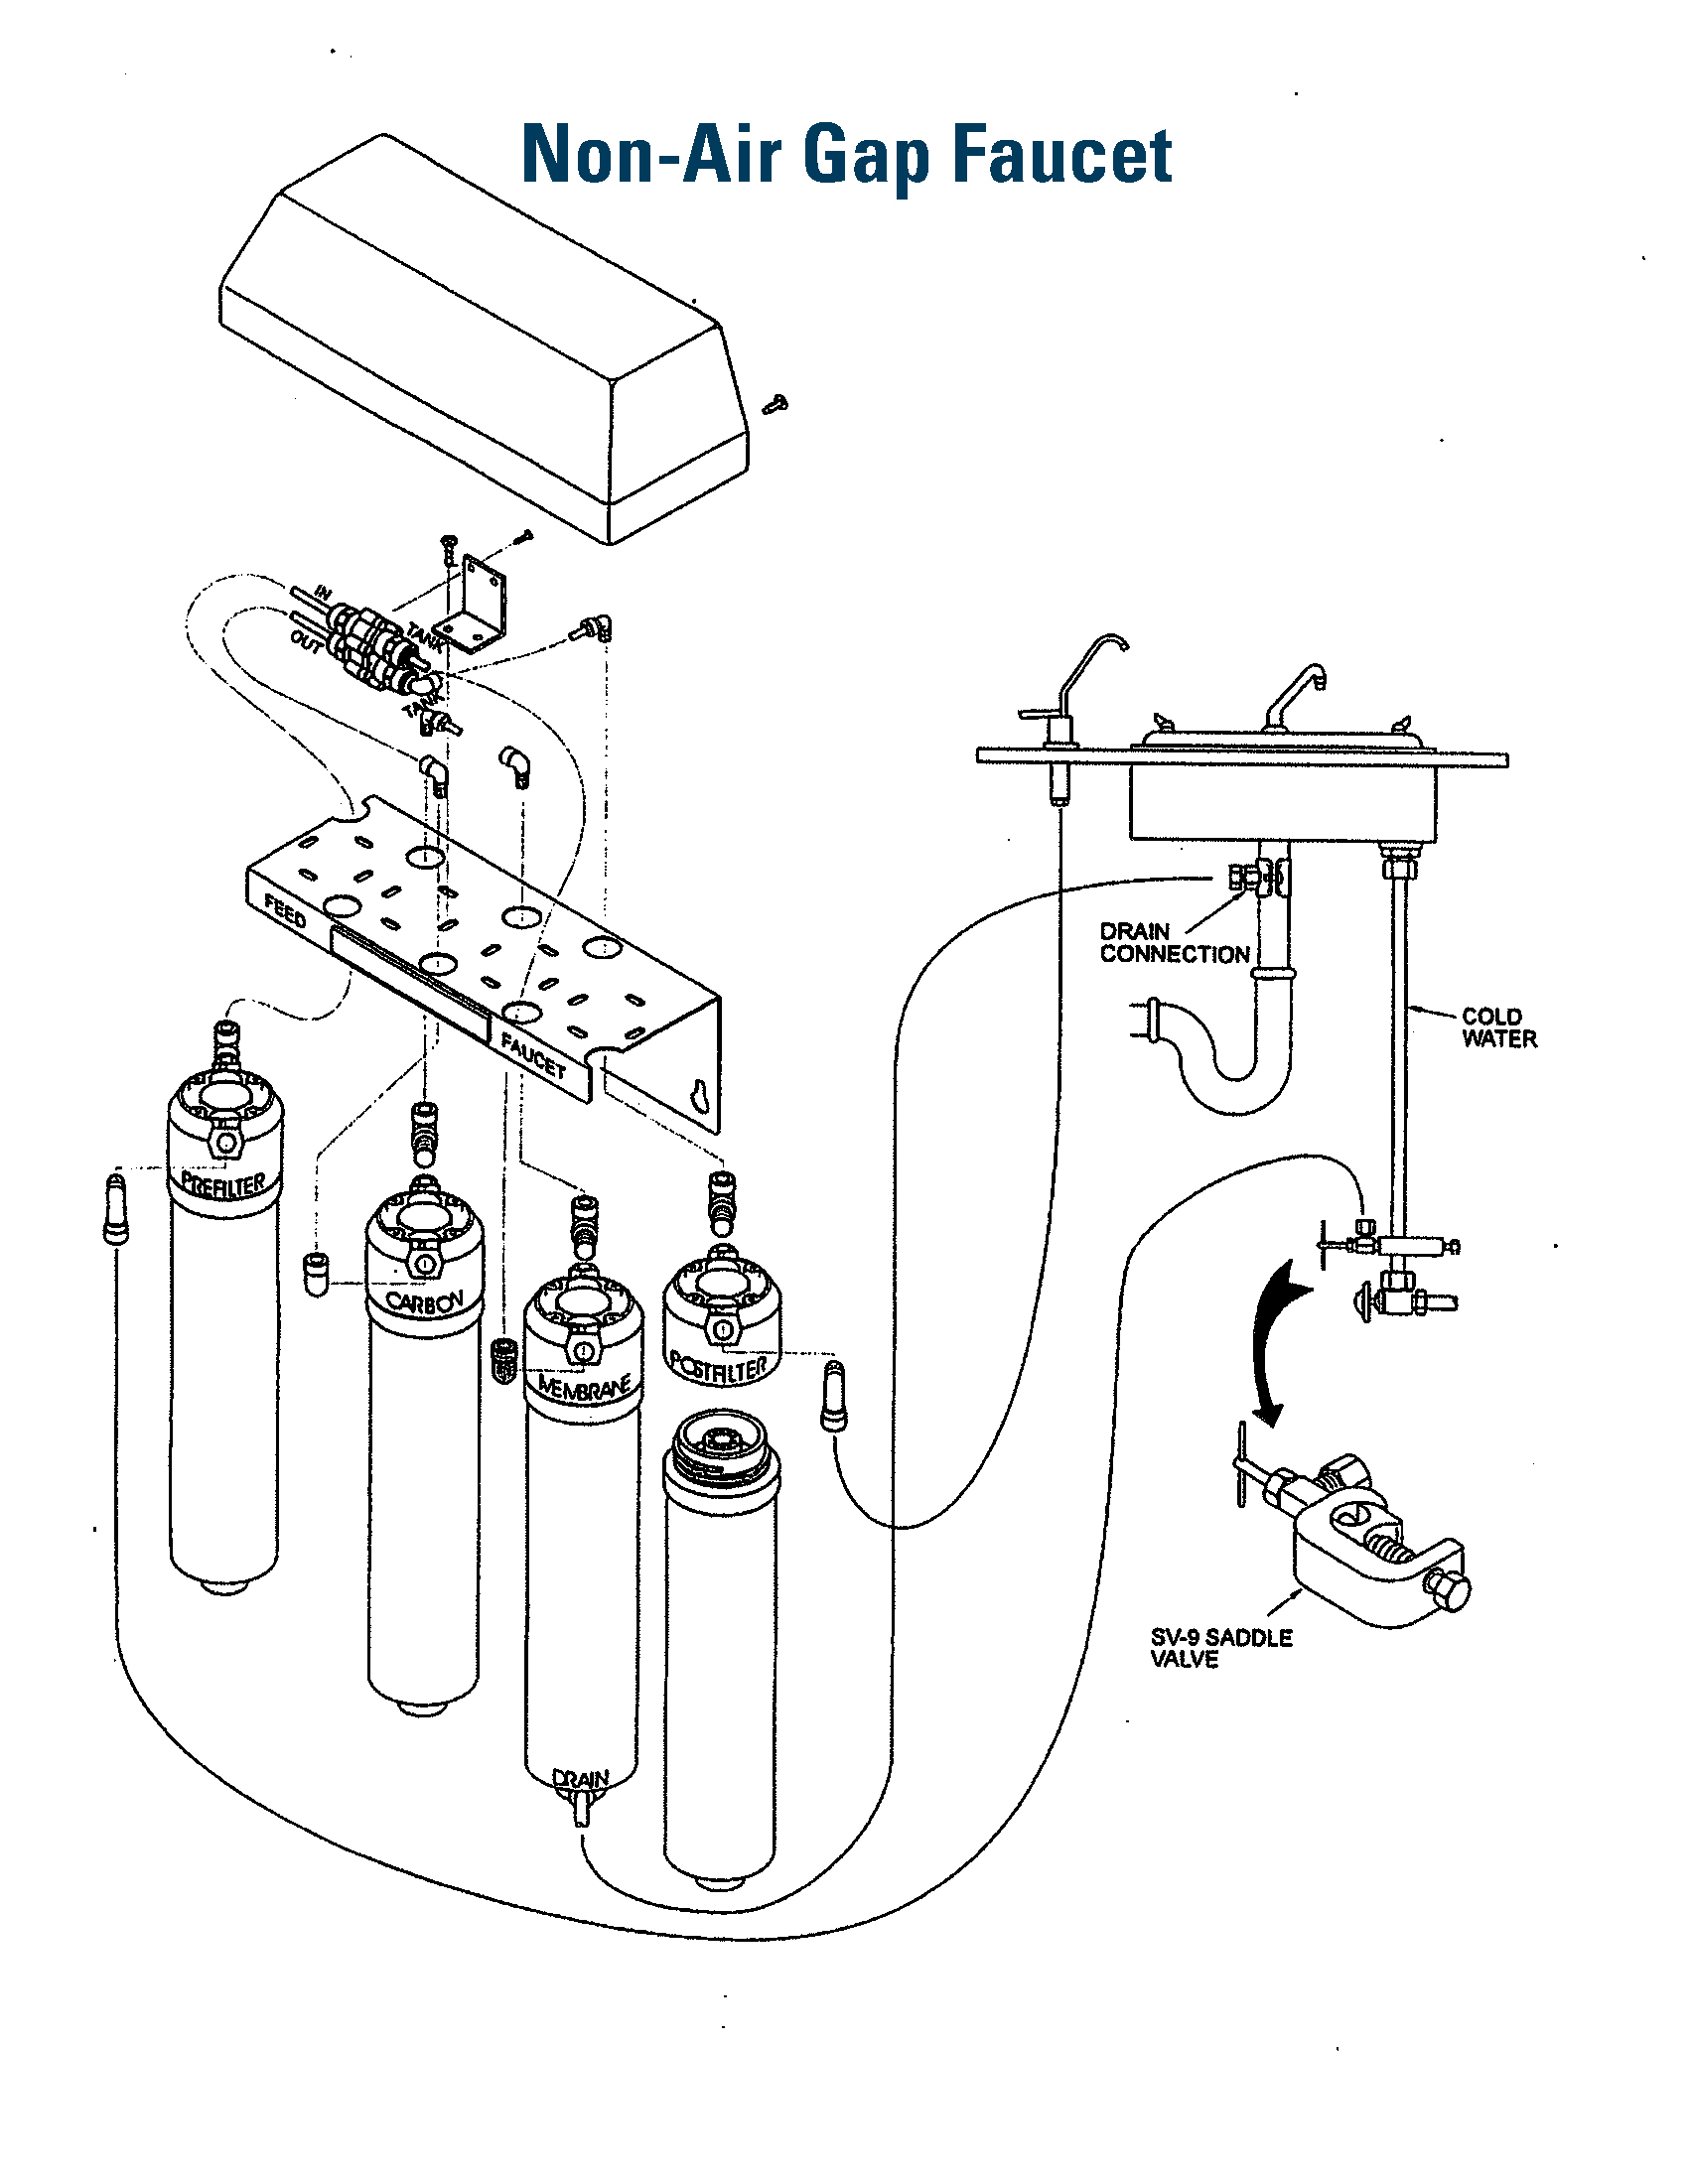 Non-Air Gap Faucet Diagram